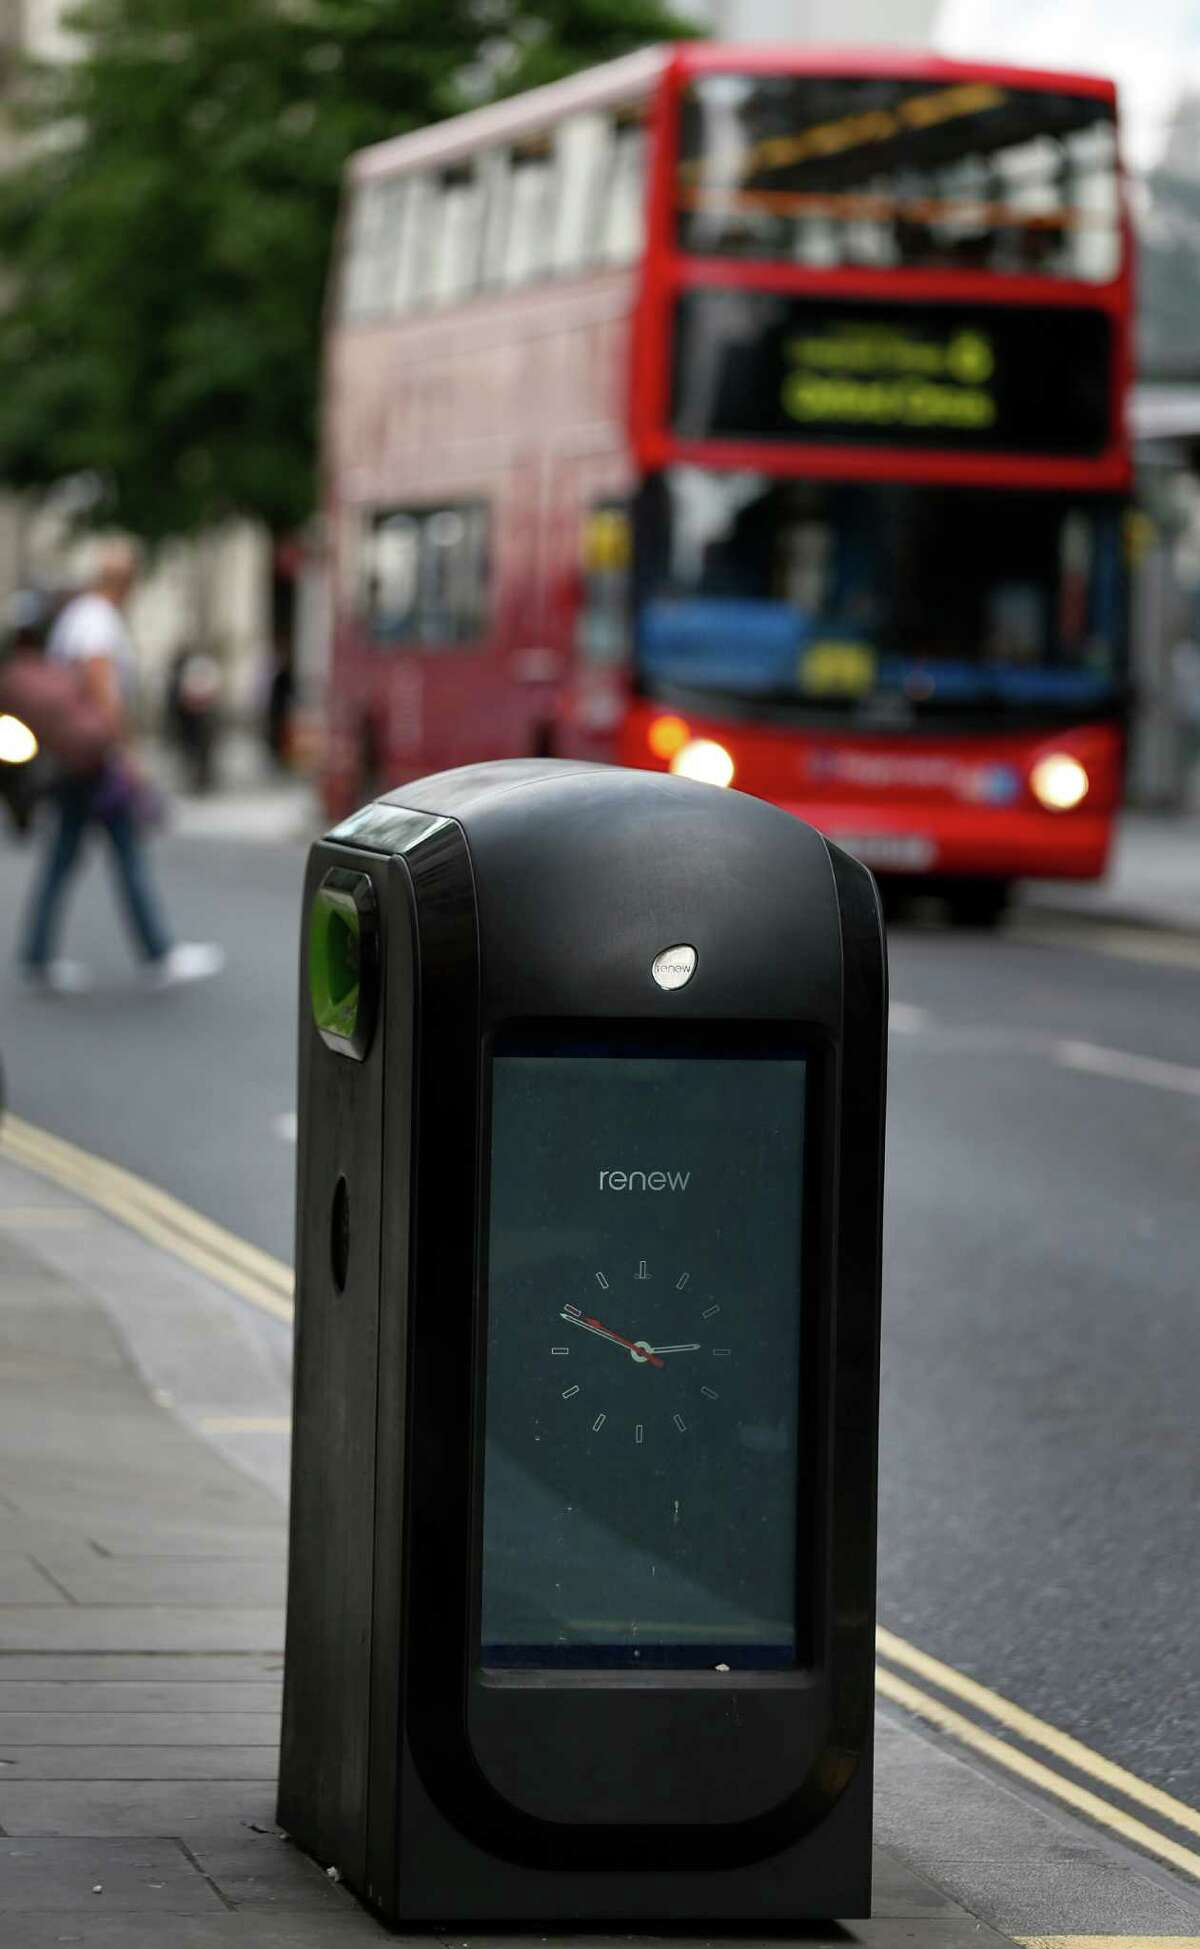 A trash bin is seen in central London, Monday, Aug. 12, 2013. Officials say that an advertising firm must immediately stop using its network of high-tech trash cans, like this one, to track people walking through London's financial district.The City of London Corporation says it has demanded Renew pull the plug on the program, which measures the Wi-Fi signals emitted by smartphones to follow commuters as they pass the garbage cans. The City of London Corporation is responsible for the city's historic